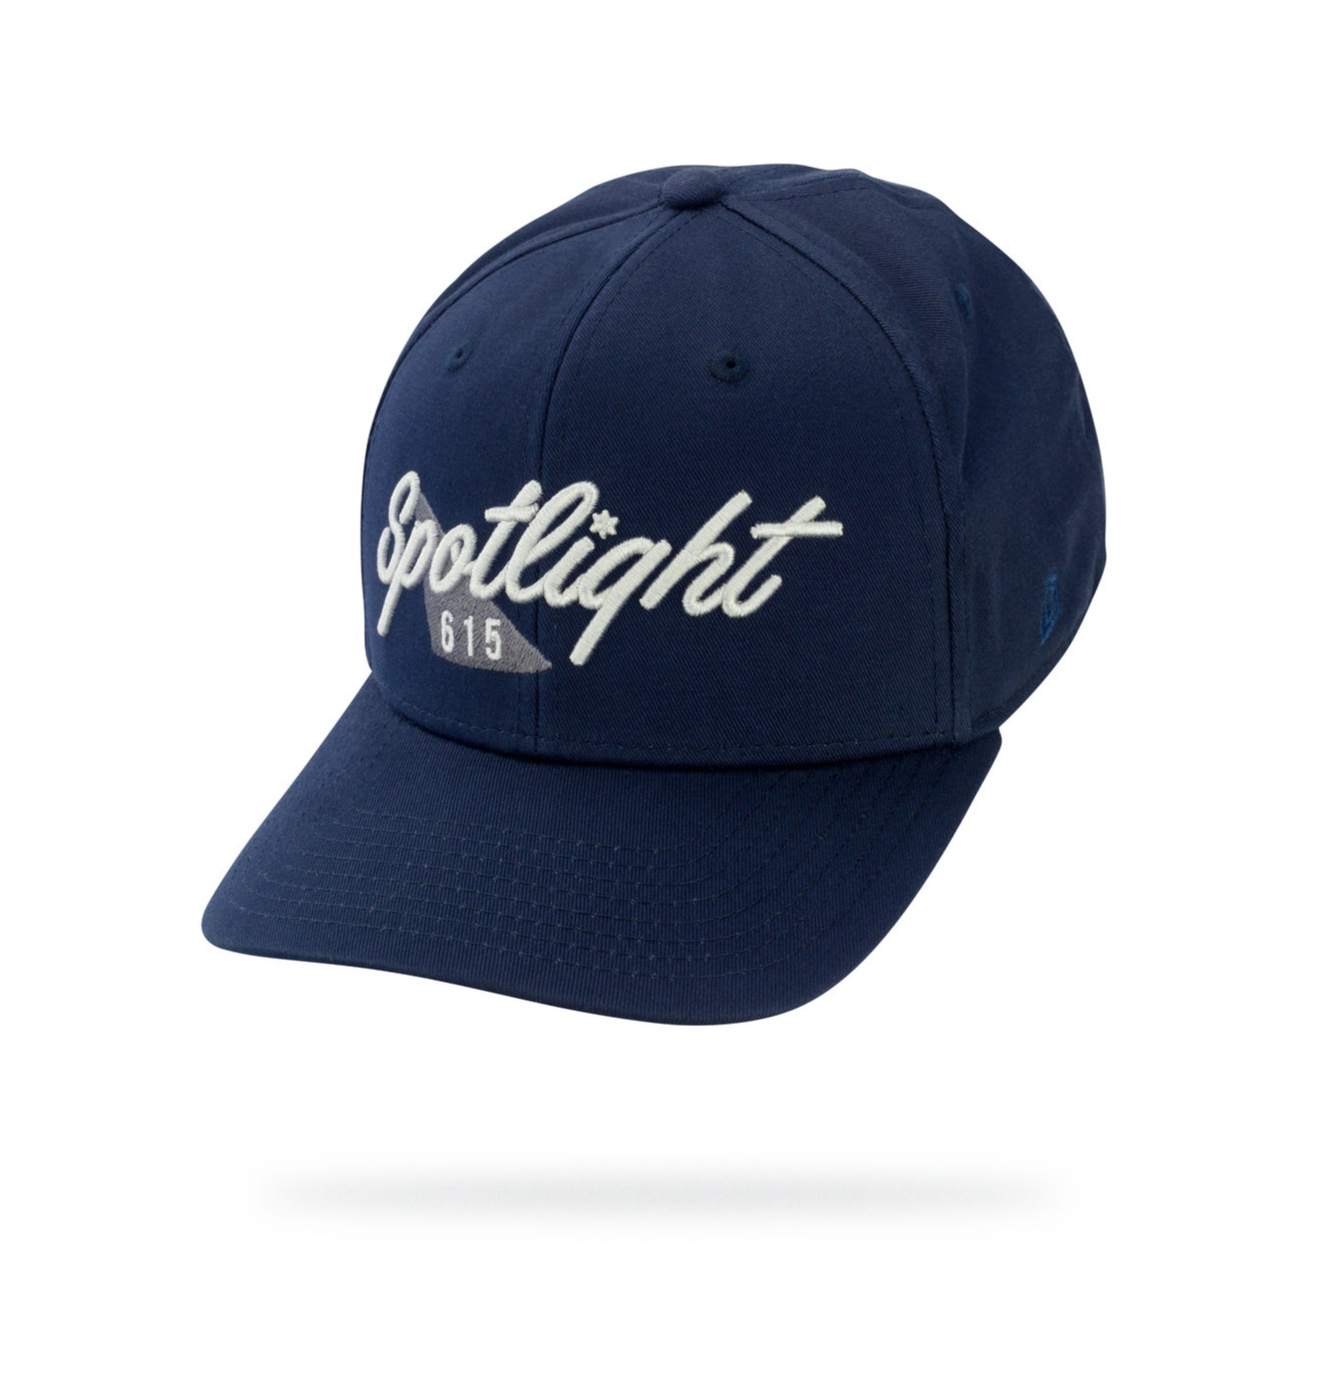 Featured Hats: STYLE II  - Classic Structured Twill Cap w/ Curved Visor & 3D Embroidery